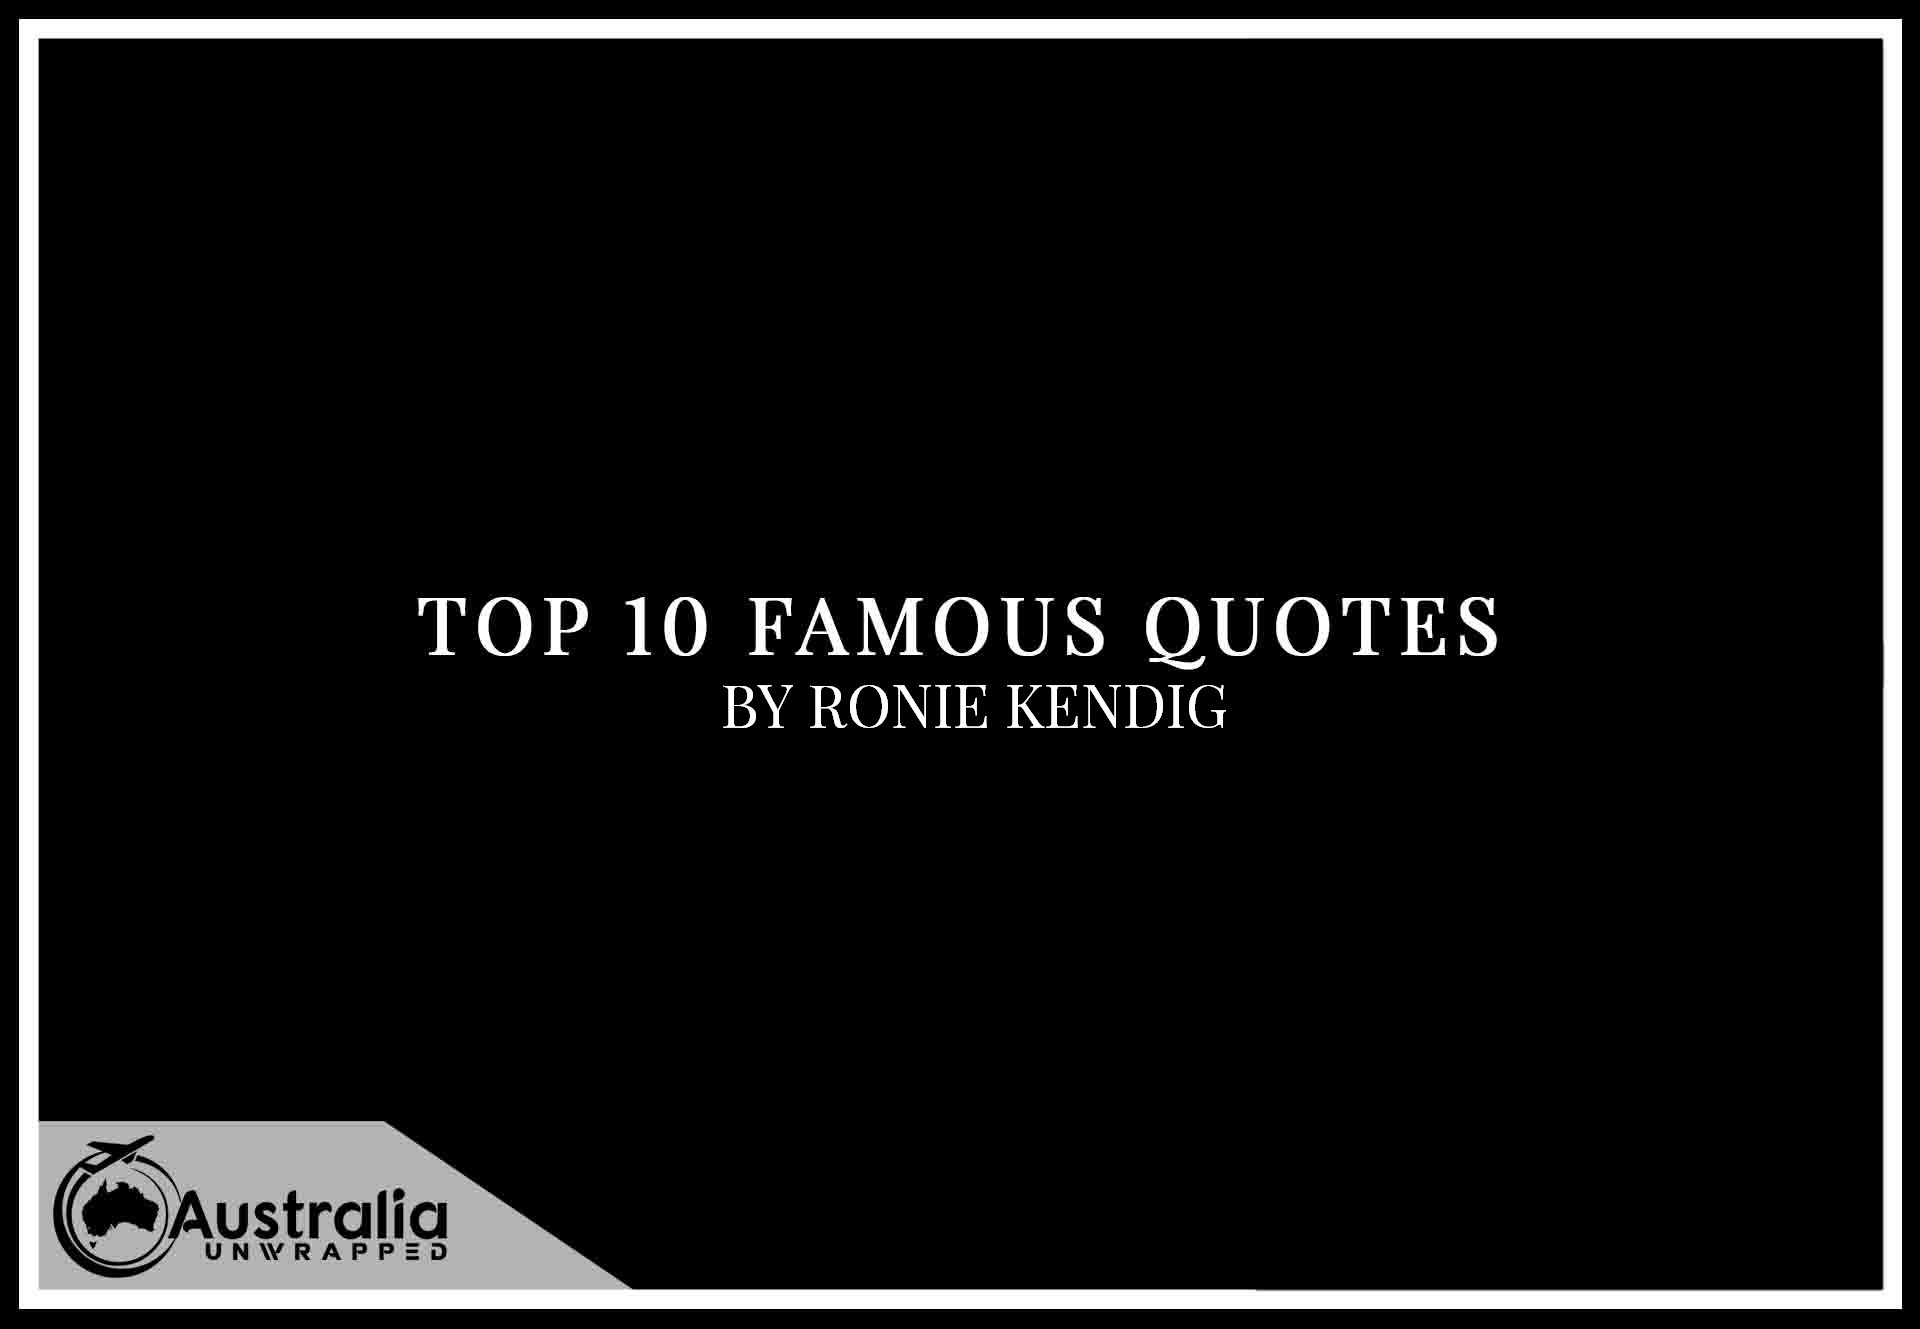 Top 10 Famous Quotes by Author Ronie Kendig